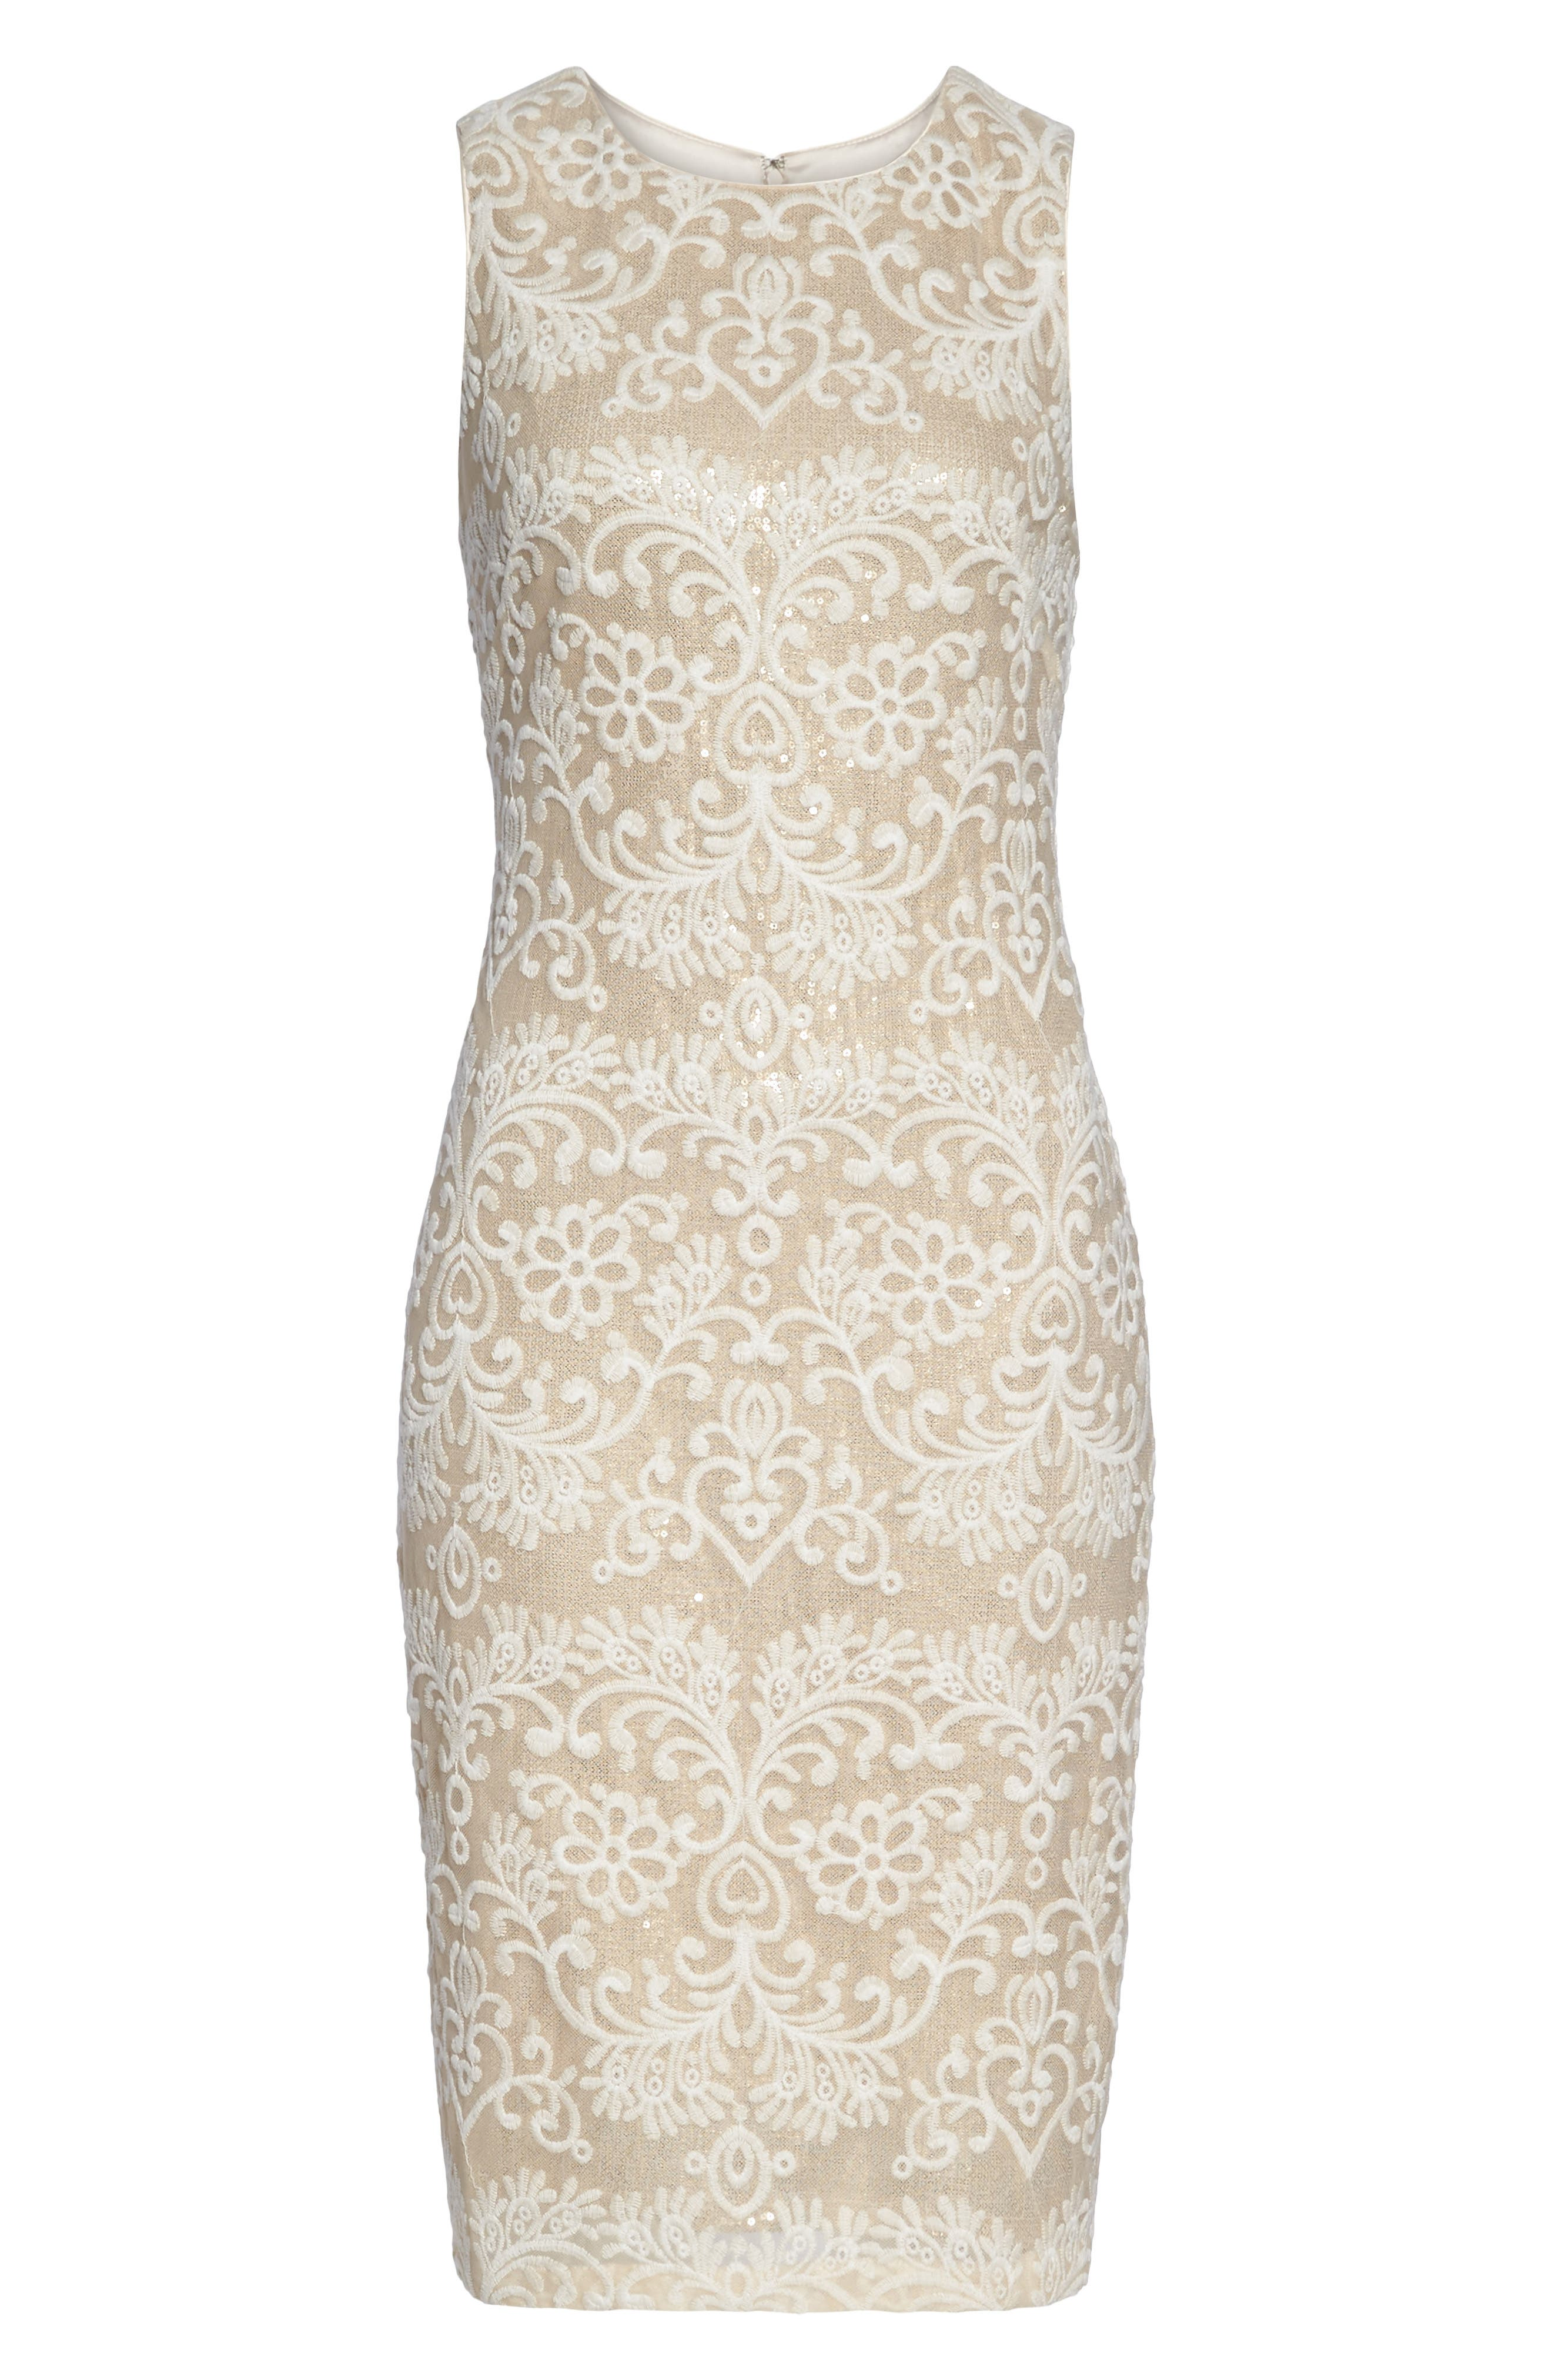 Embroidered Sequin Mesh Sheath Dress,                             Alternate thumbnail 6, color,                             250